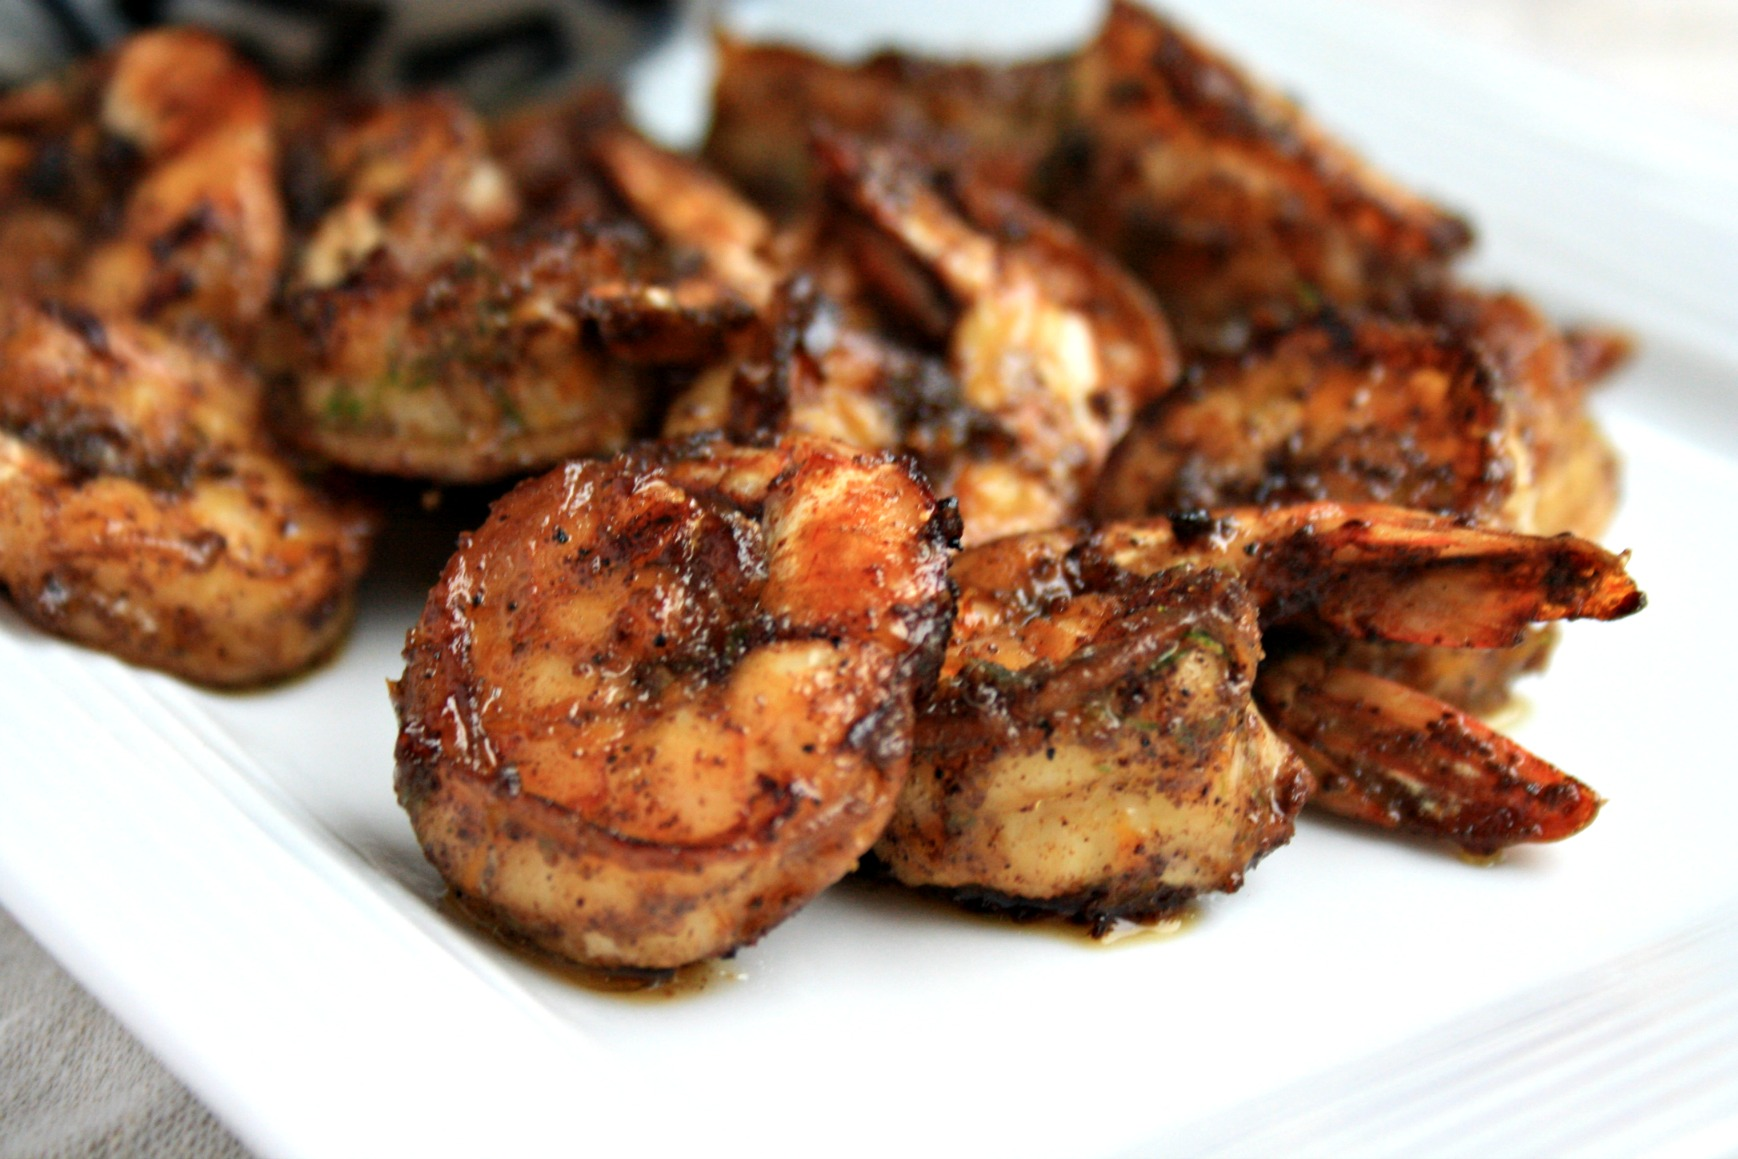 Spicy shrimp recipe with citrus avocado sauce is easy and impressive